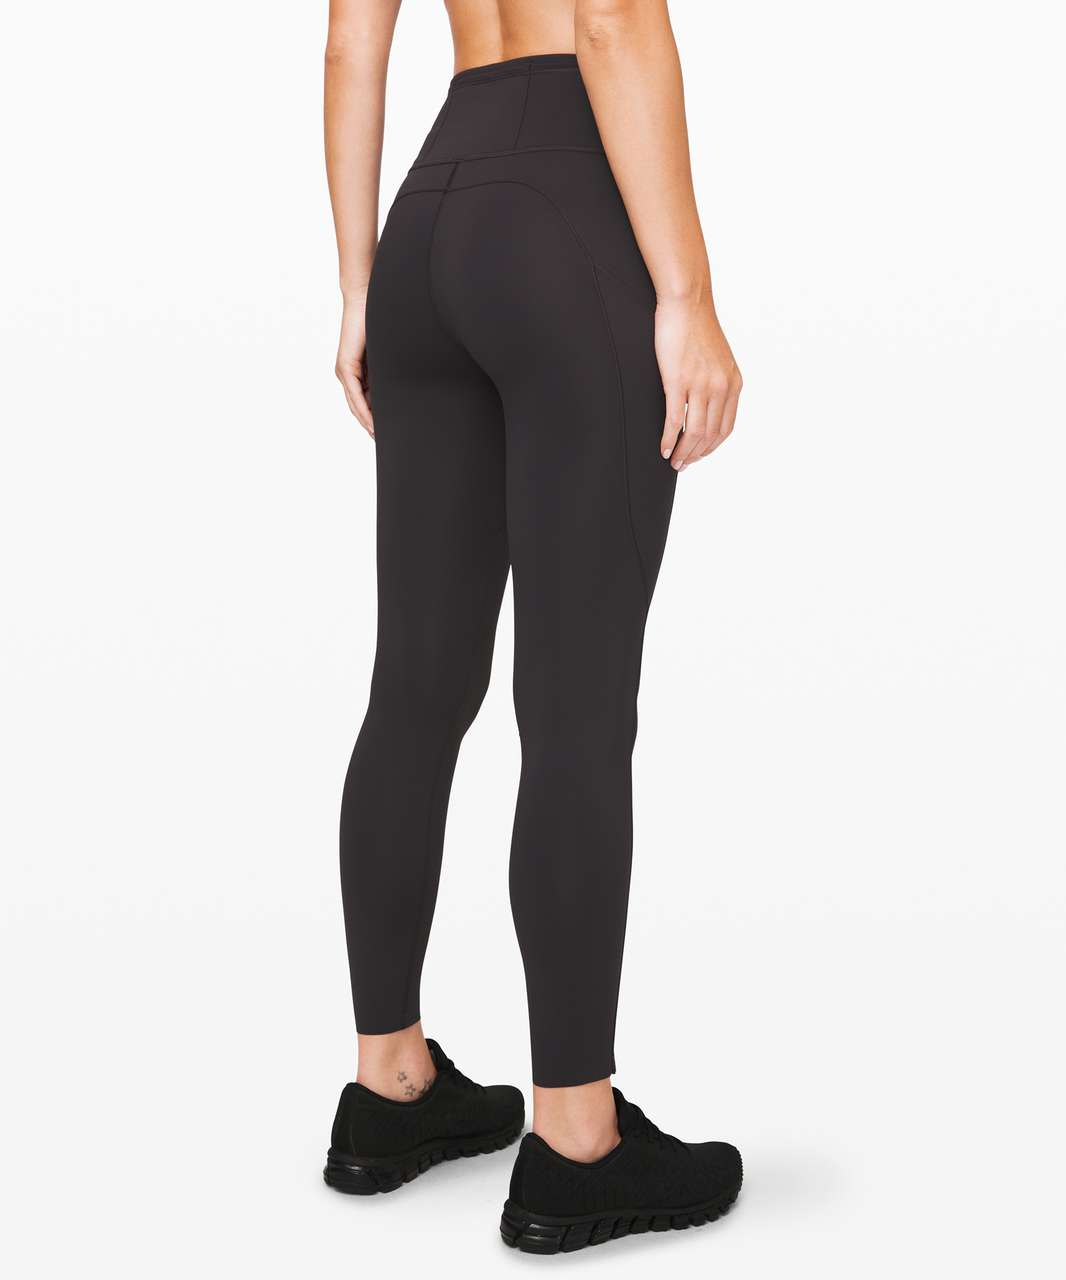 "Lululemon Fast and Free Tight II 25"" *Non-Reflective Nulux - Intergalactic"